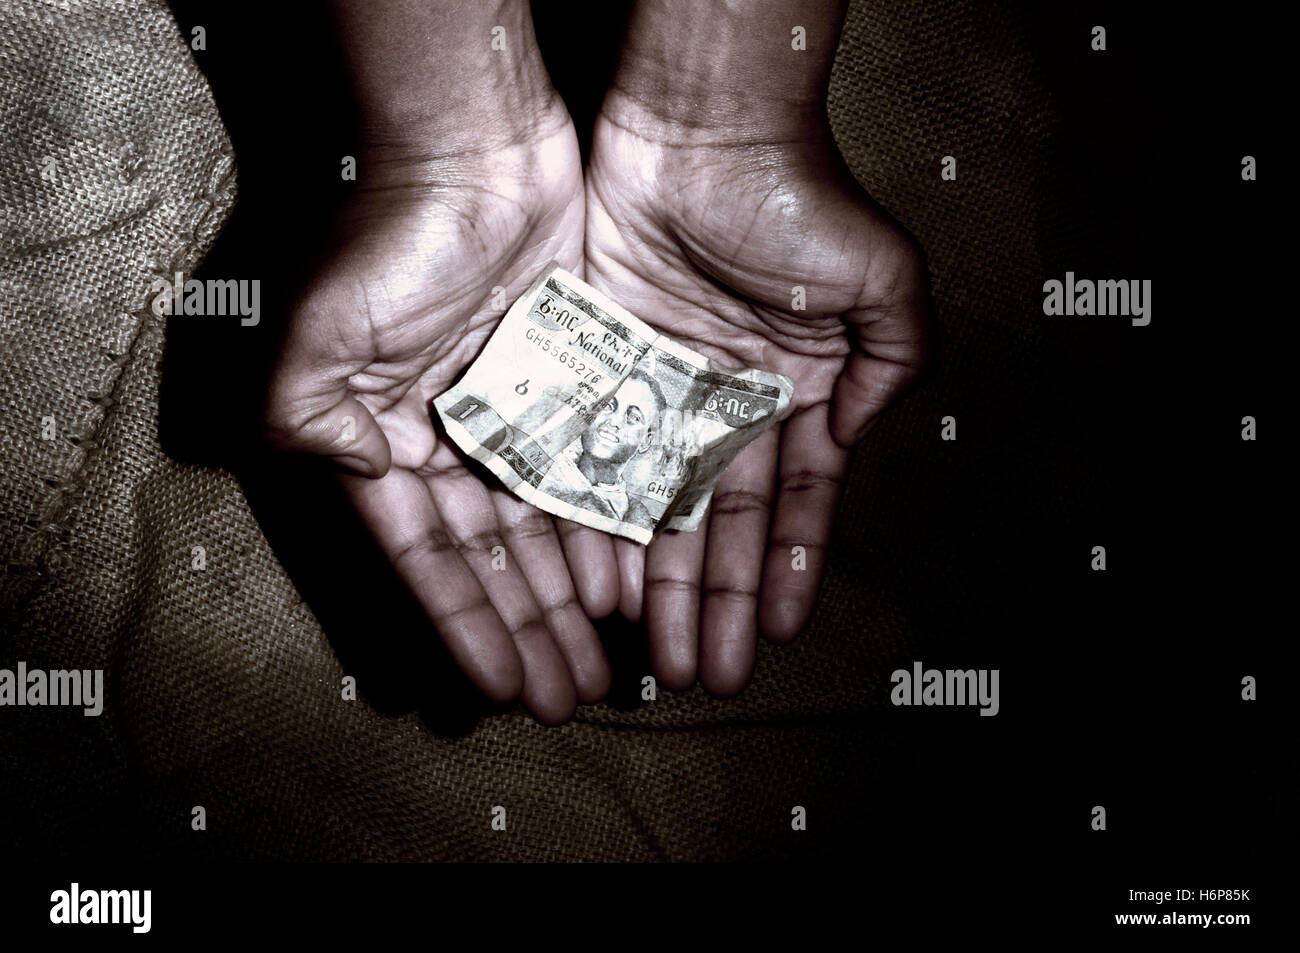 developing aid - Stock Image